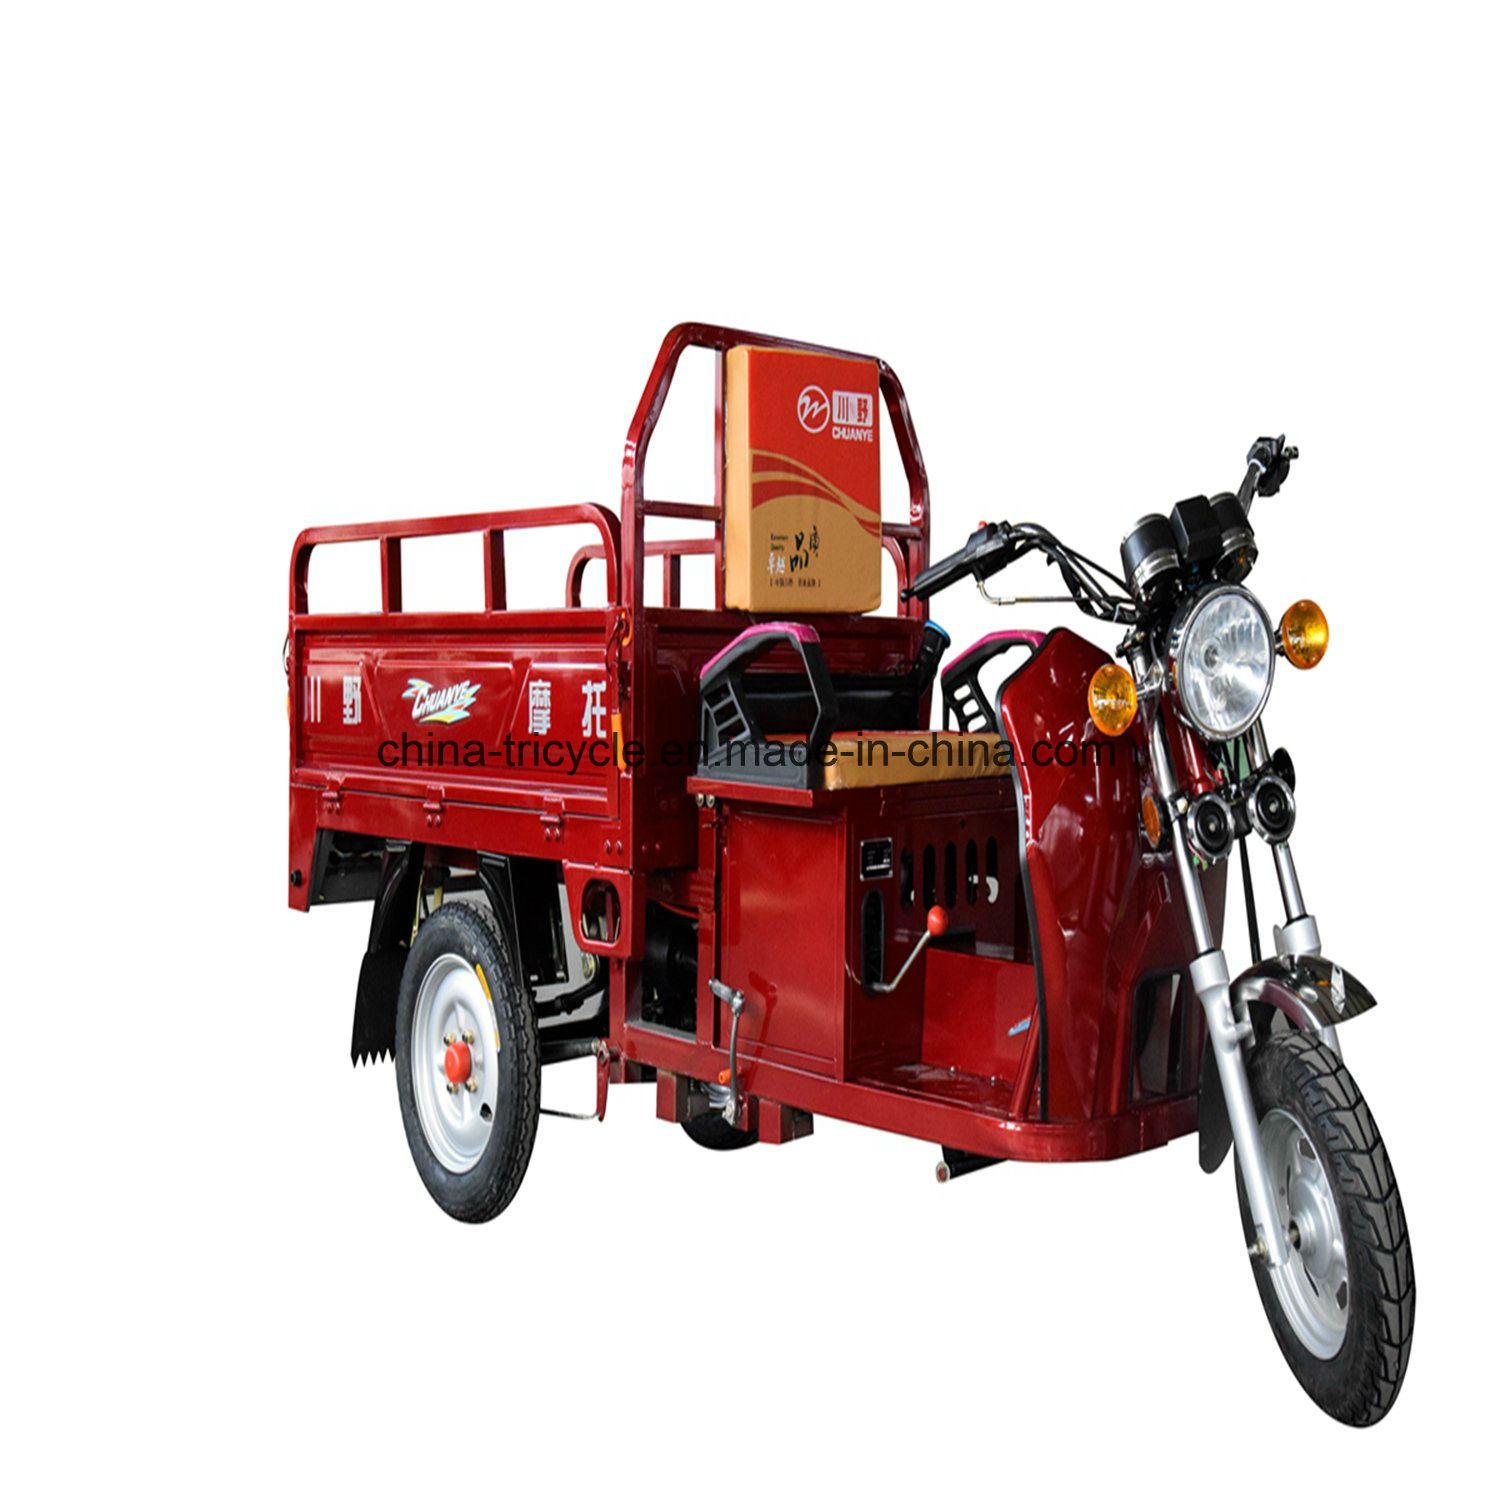 China 110cc Electric Start Hybrid Three Wheel Cargo Truck Tricycle Farm Trike Wheeler